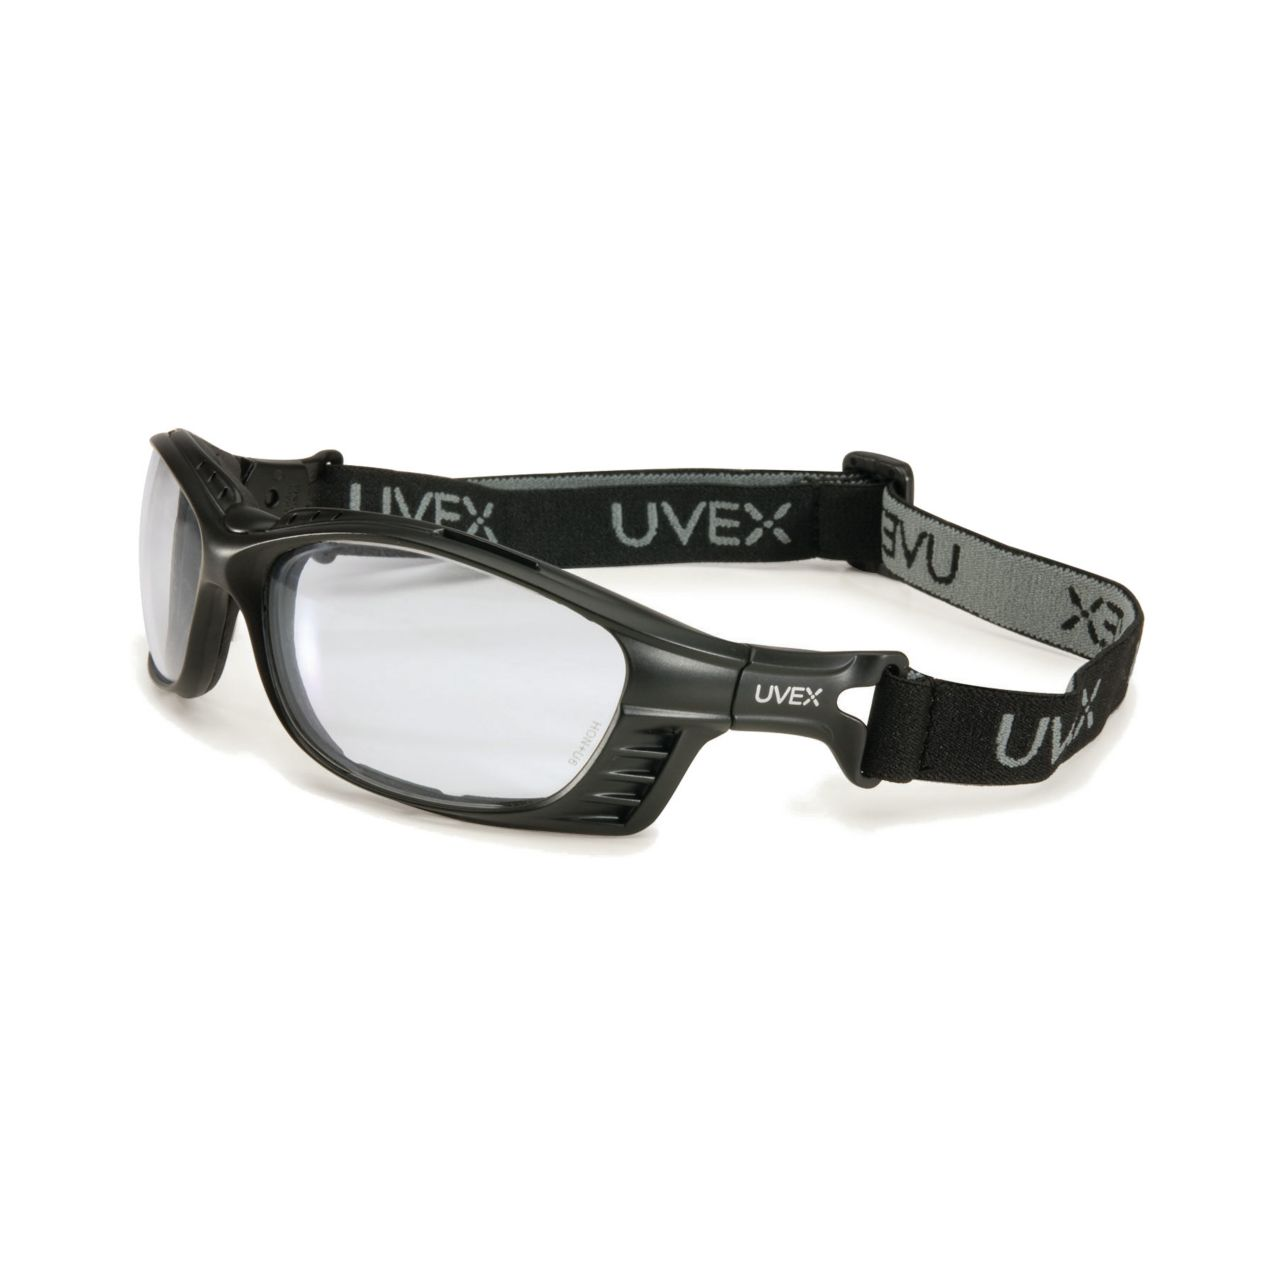 UX_uvex-livewire_livewire_s2600_bk_clear_hb